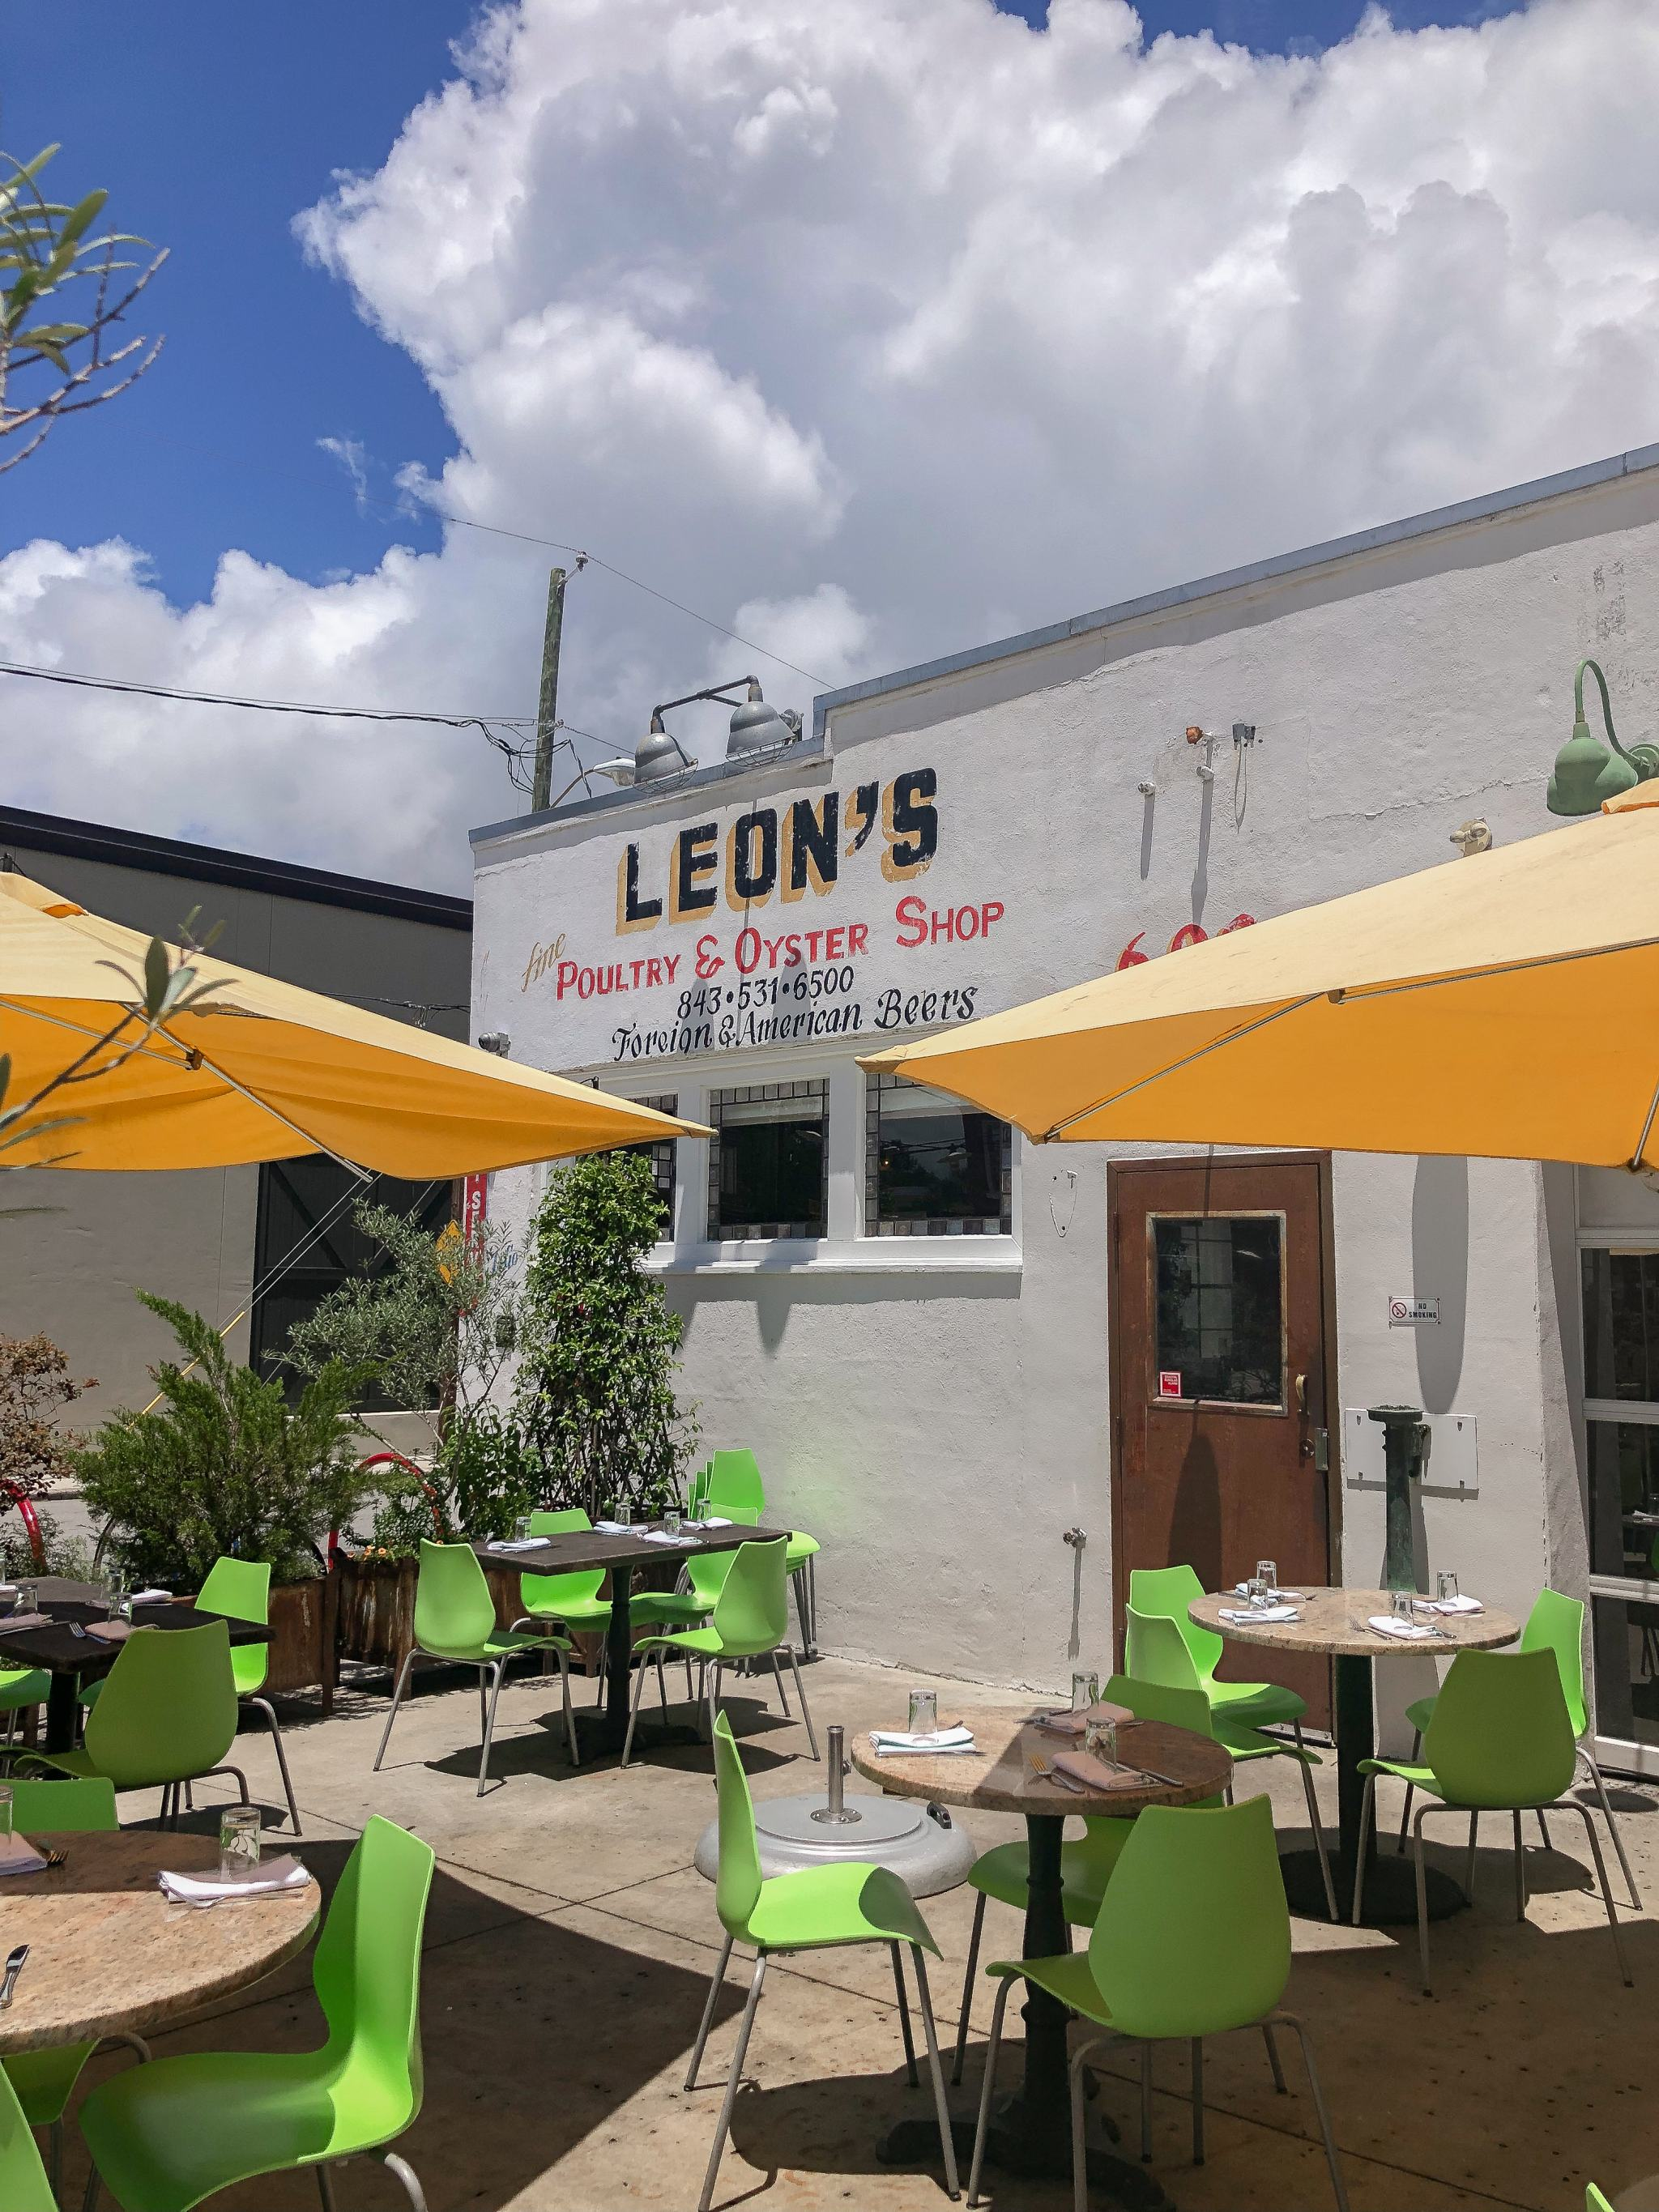 Leons Fine Poulty and Oyster Shop - Leons Oyster Charleston - best restaurants in charleston - best seafood in Charleston - seafood restaurant in charleston - king street restaurants